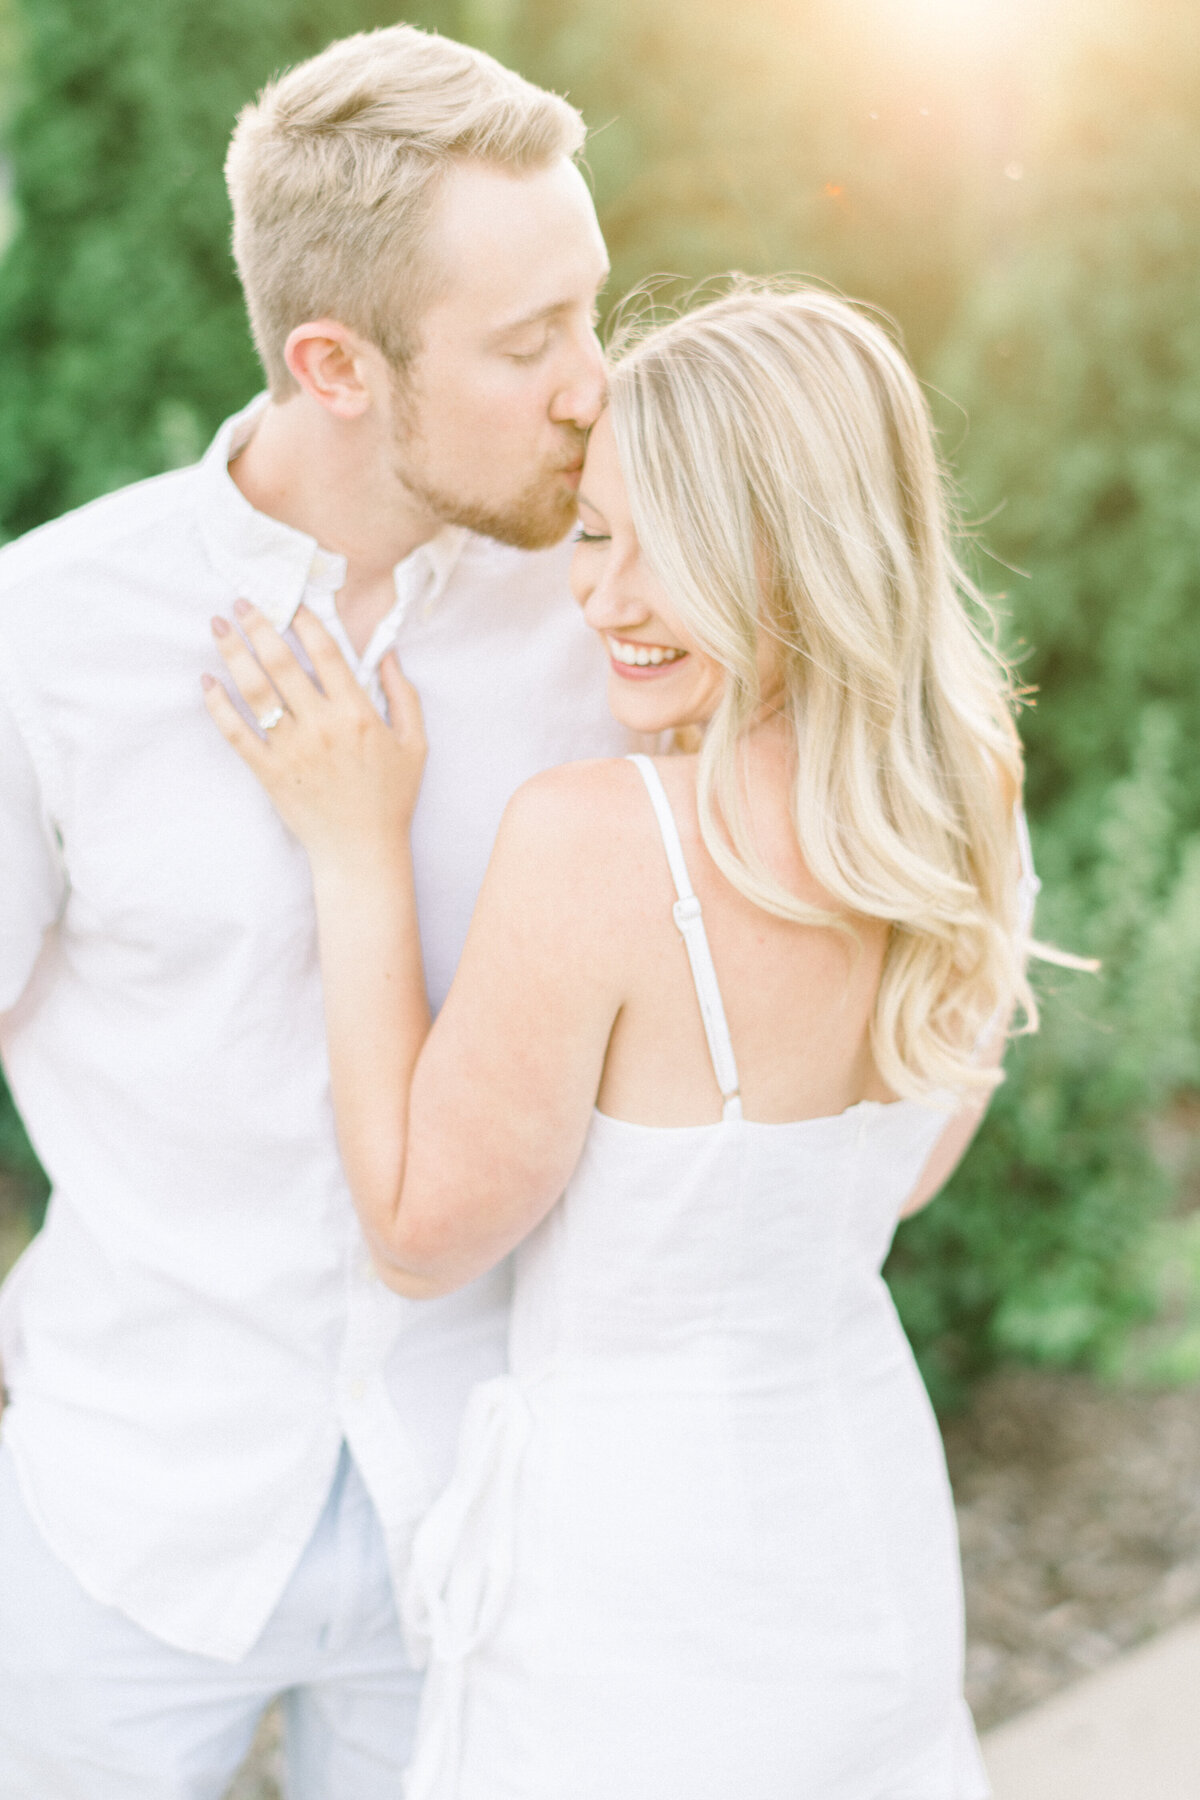 Minneapolis Wedding Photographer, Minneapolis Luxury Photogrpaher, Minnesota wedding photographer, Minneapolis light and airy photographer, luxury wedding photographer, minneapolis engagement photos